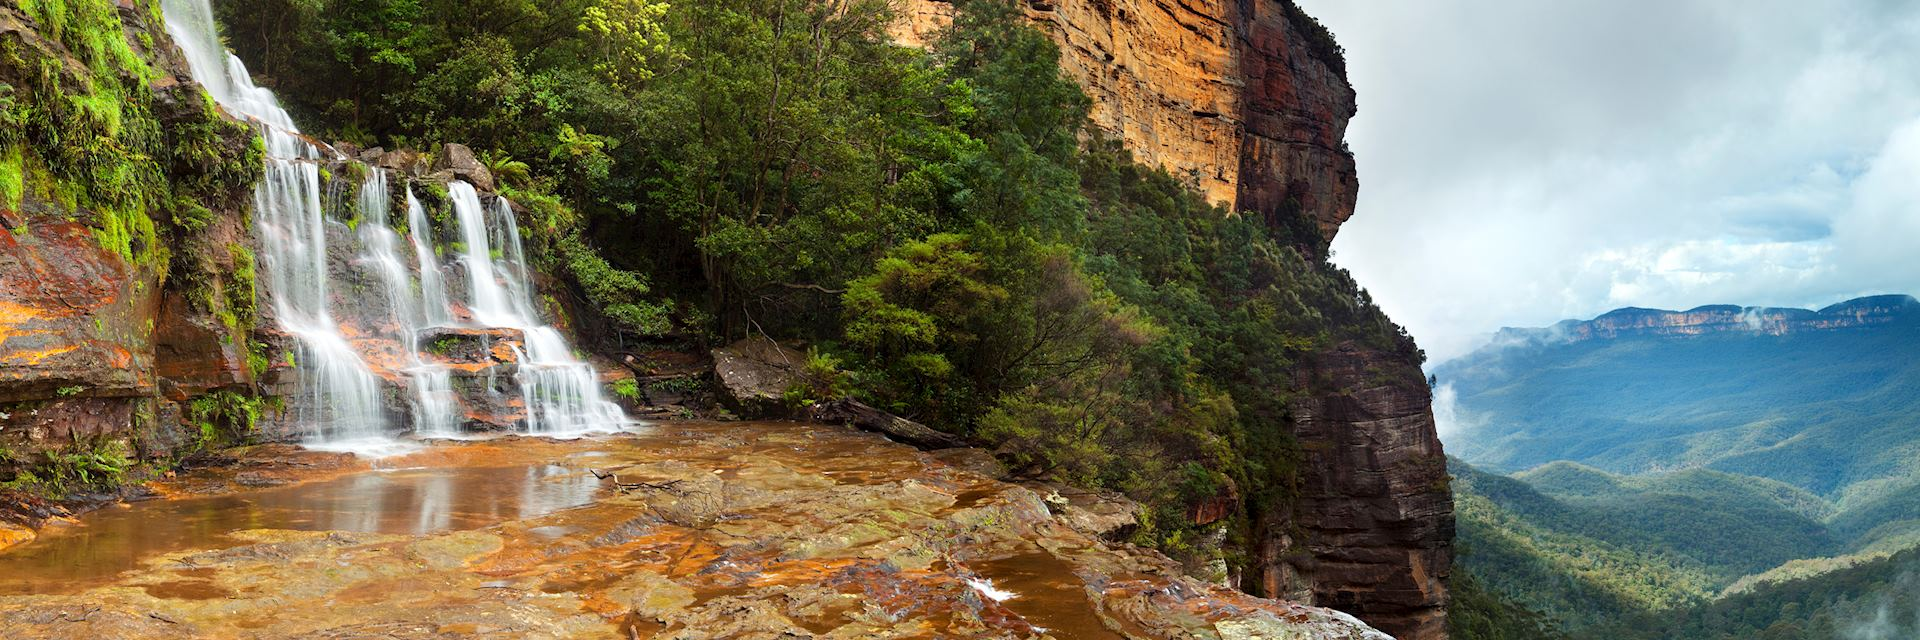 Katoomba Falls in the Blue Mountains, New South Wales